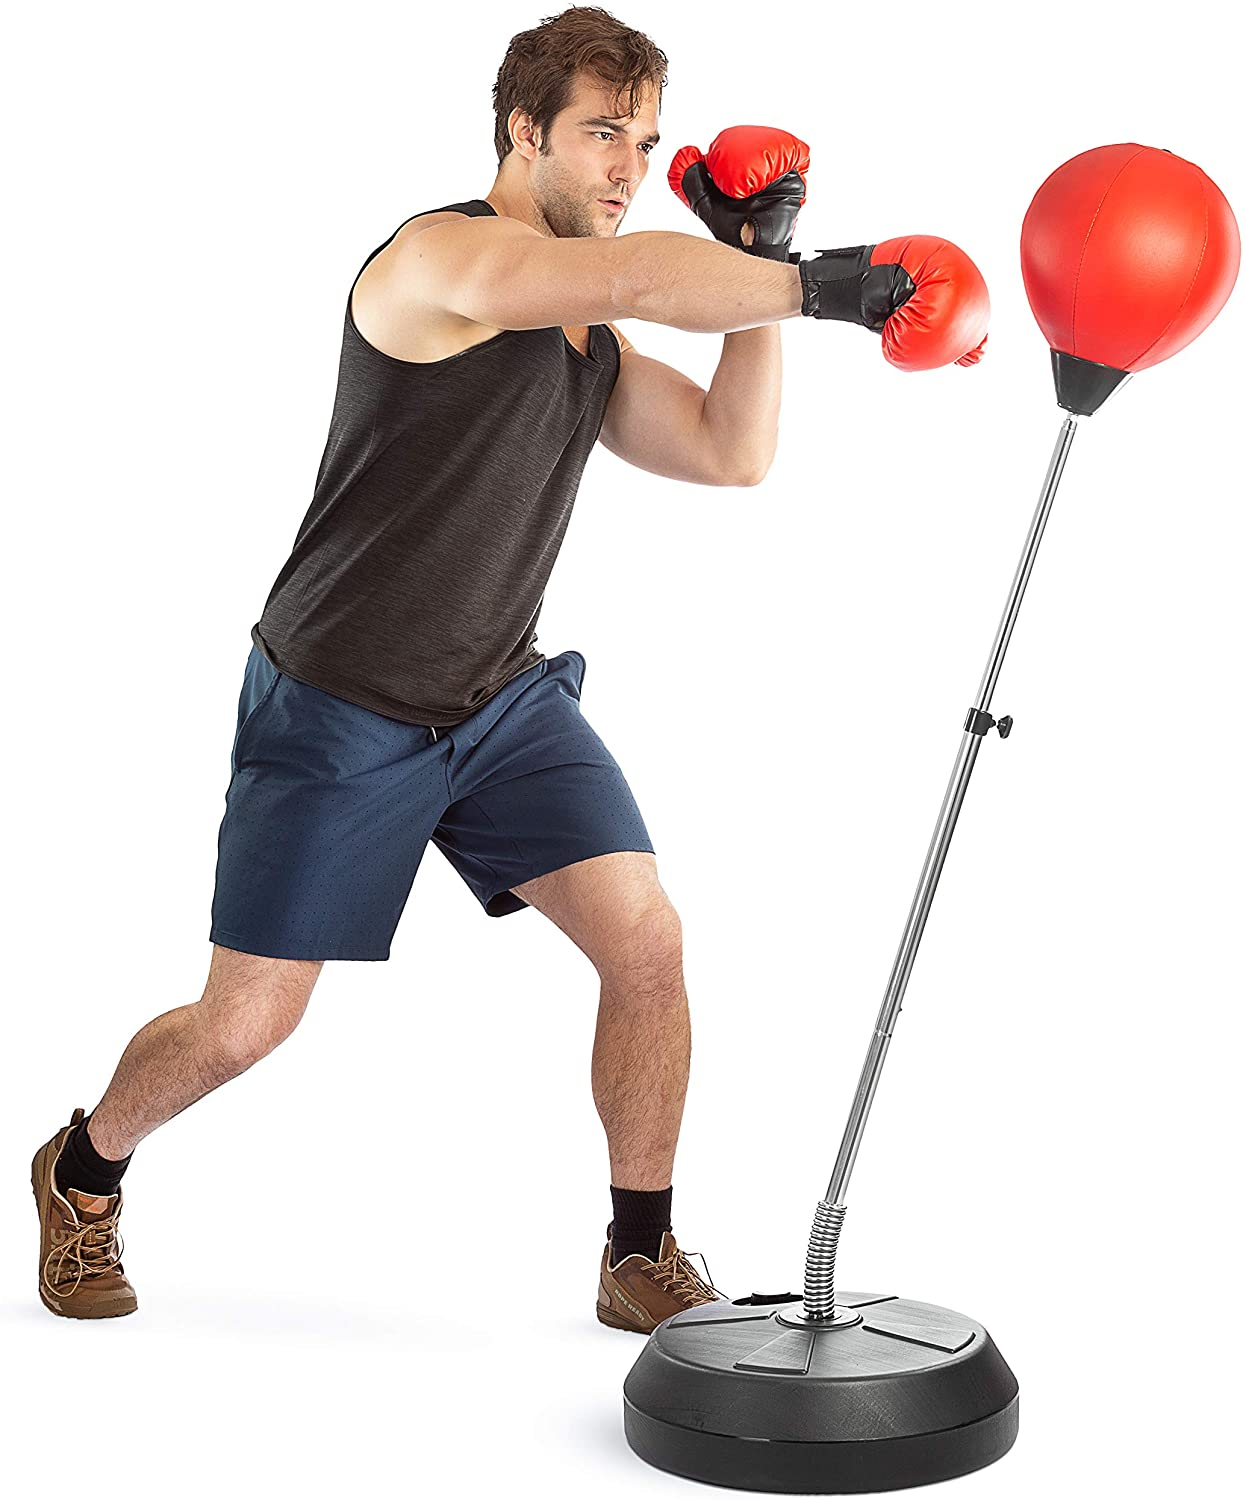 Tech Tools Punching Bag with Stand